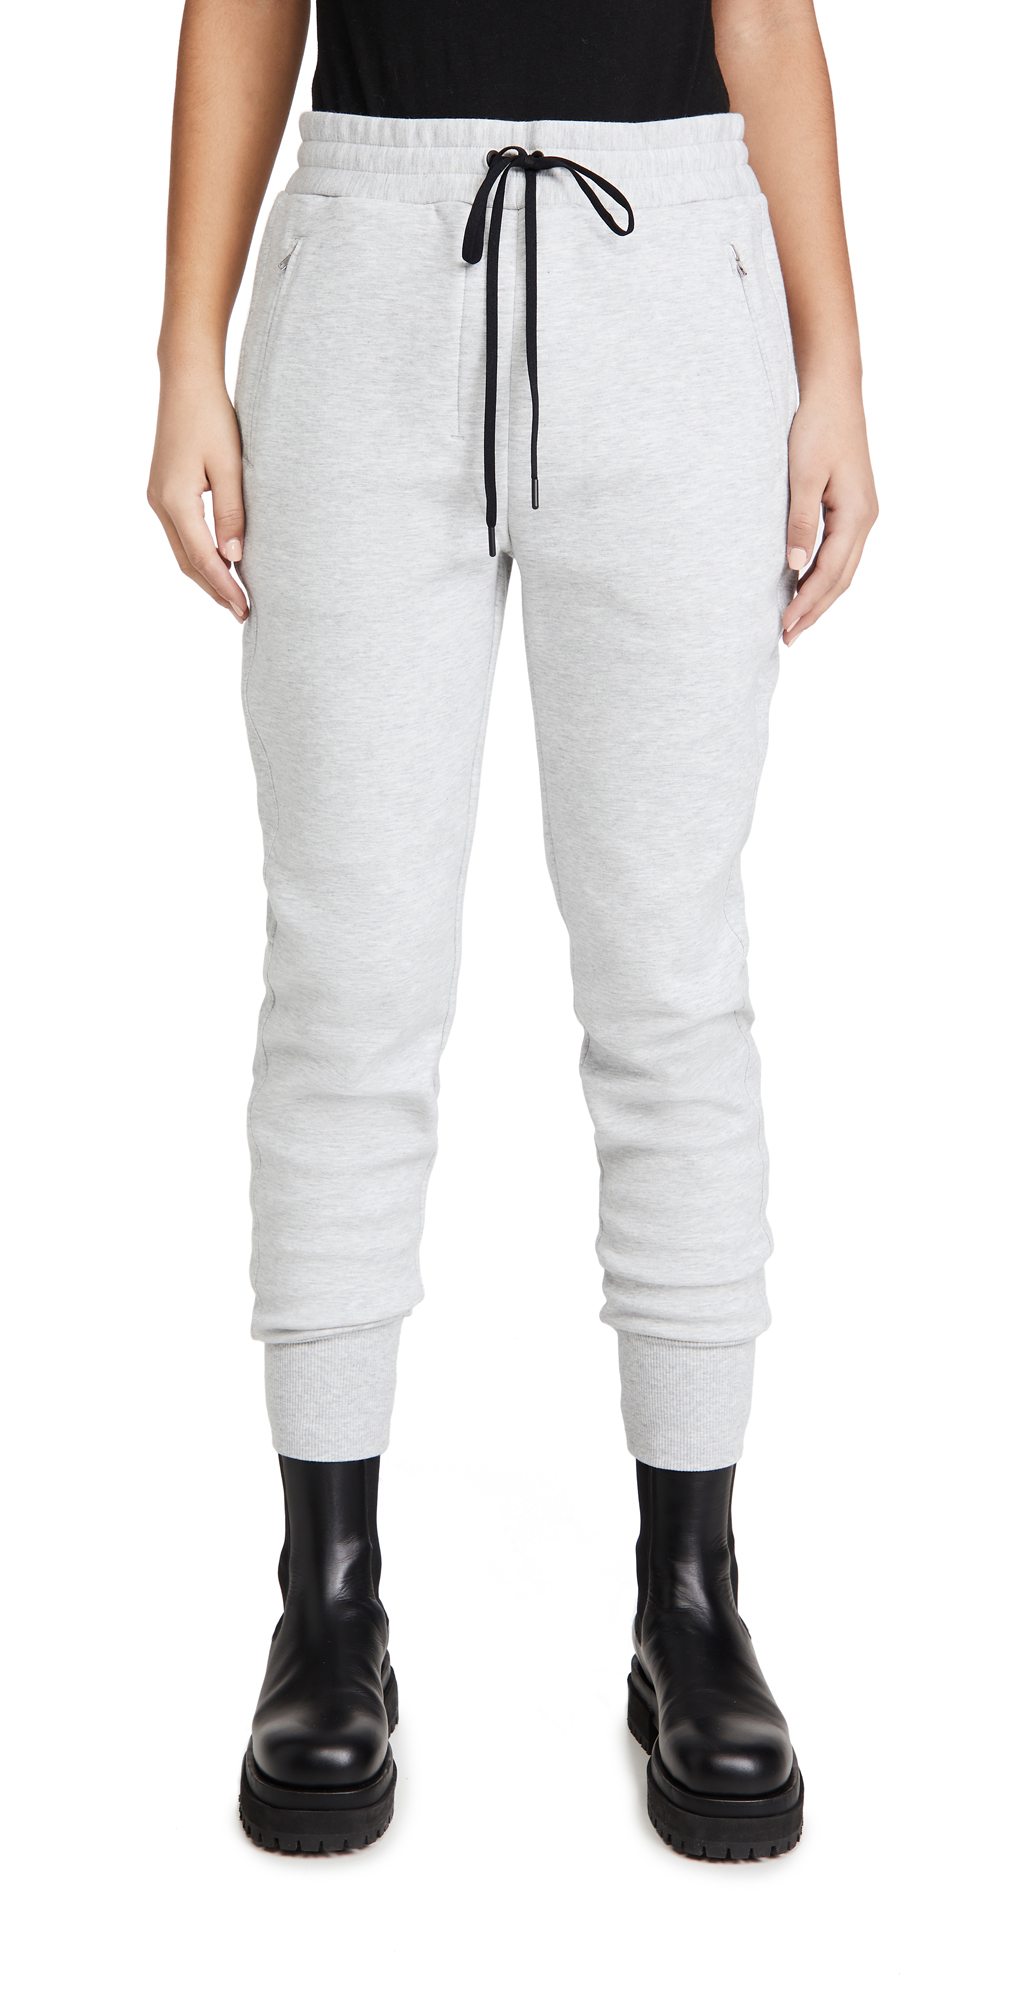 3.1 Phillip Lim Air Cushion Joggers